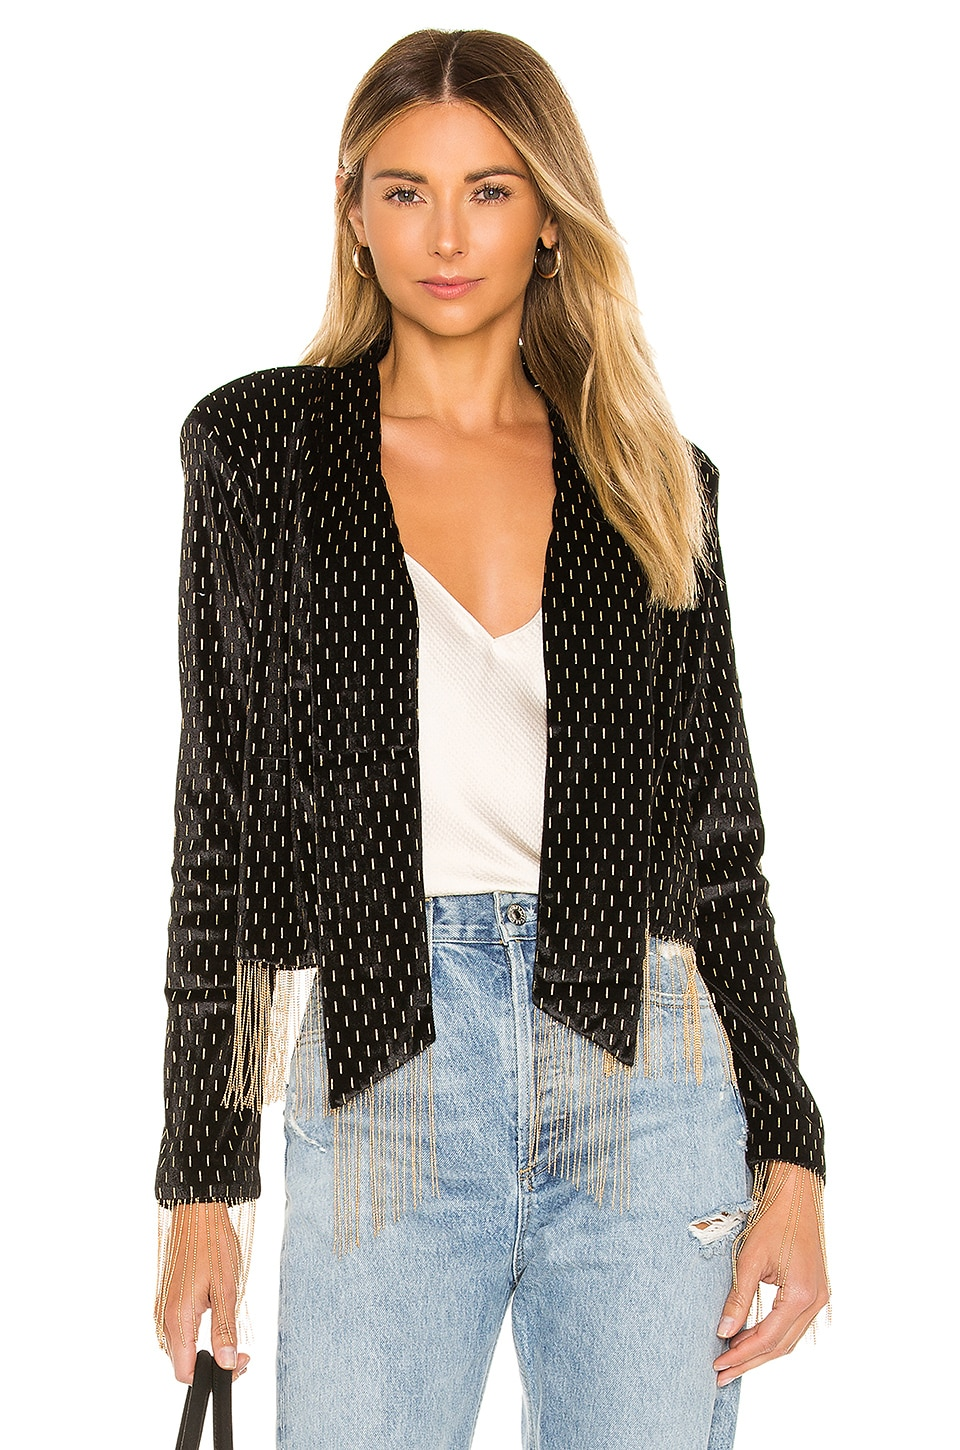 House of Harlow 1960 x REVOLVE Catina Jacket in Noir & Gold